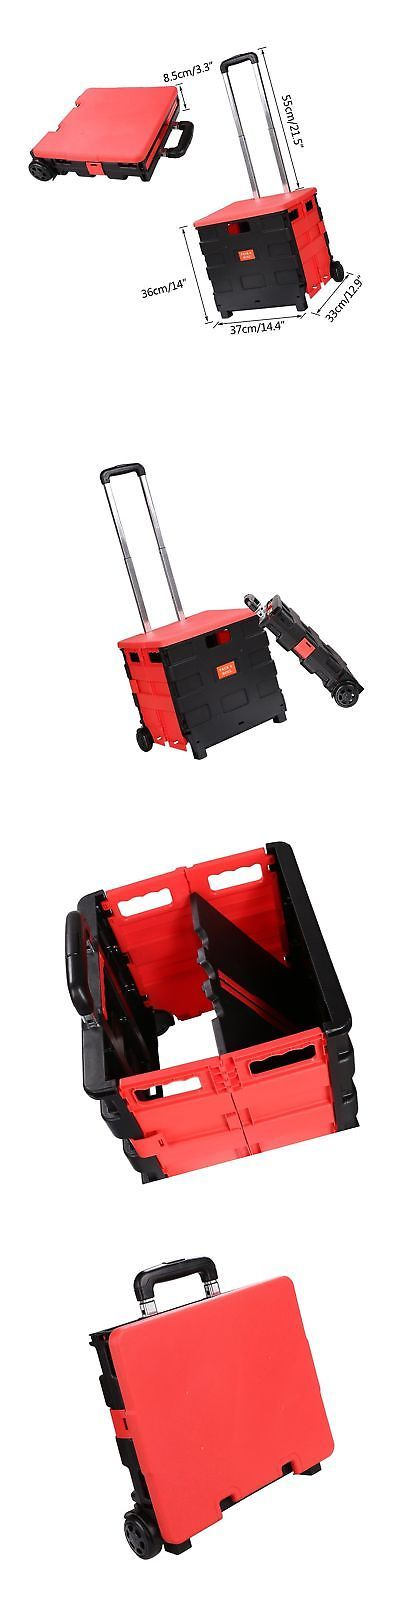 Shopping Cart Covers 73470: Folding Two-Wheeled Trolley Hand Cart Plastic Hefty Heavy Carry Shopping Trav... -> BUY IT NOW ONLY: $300 on eBay!